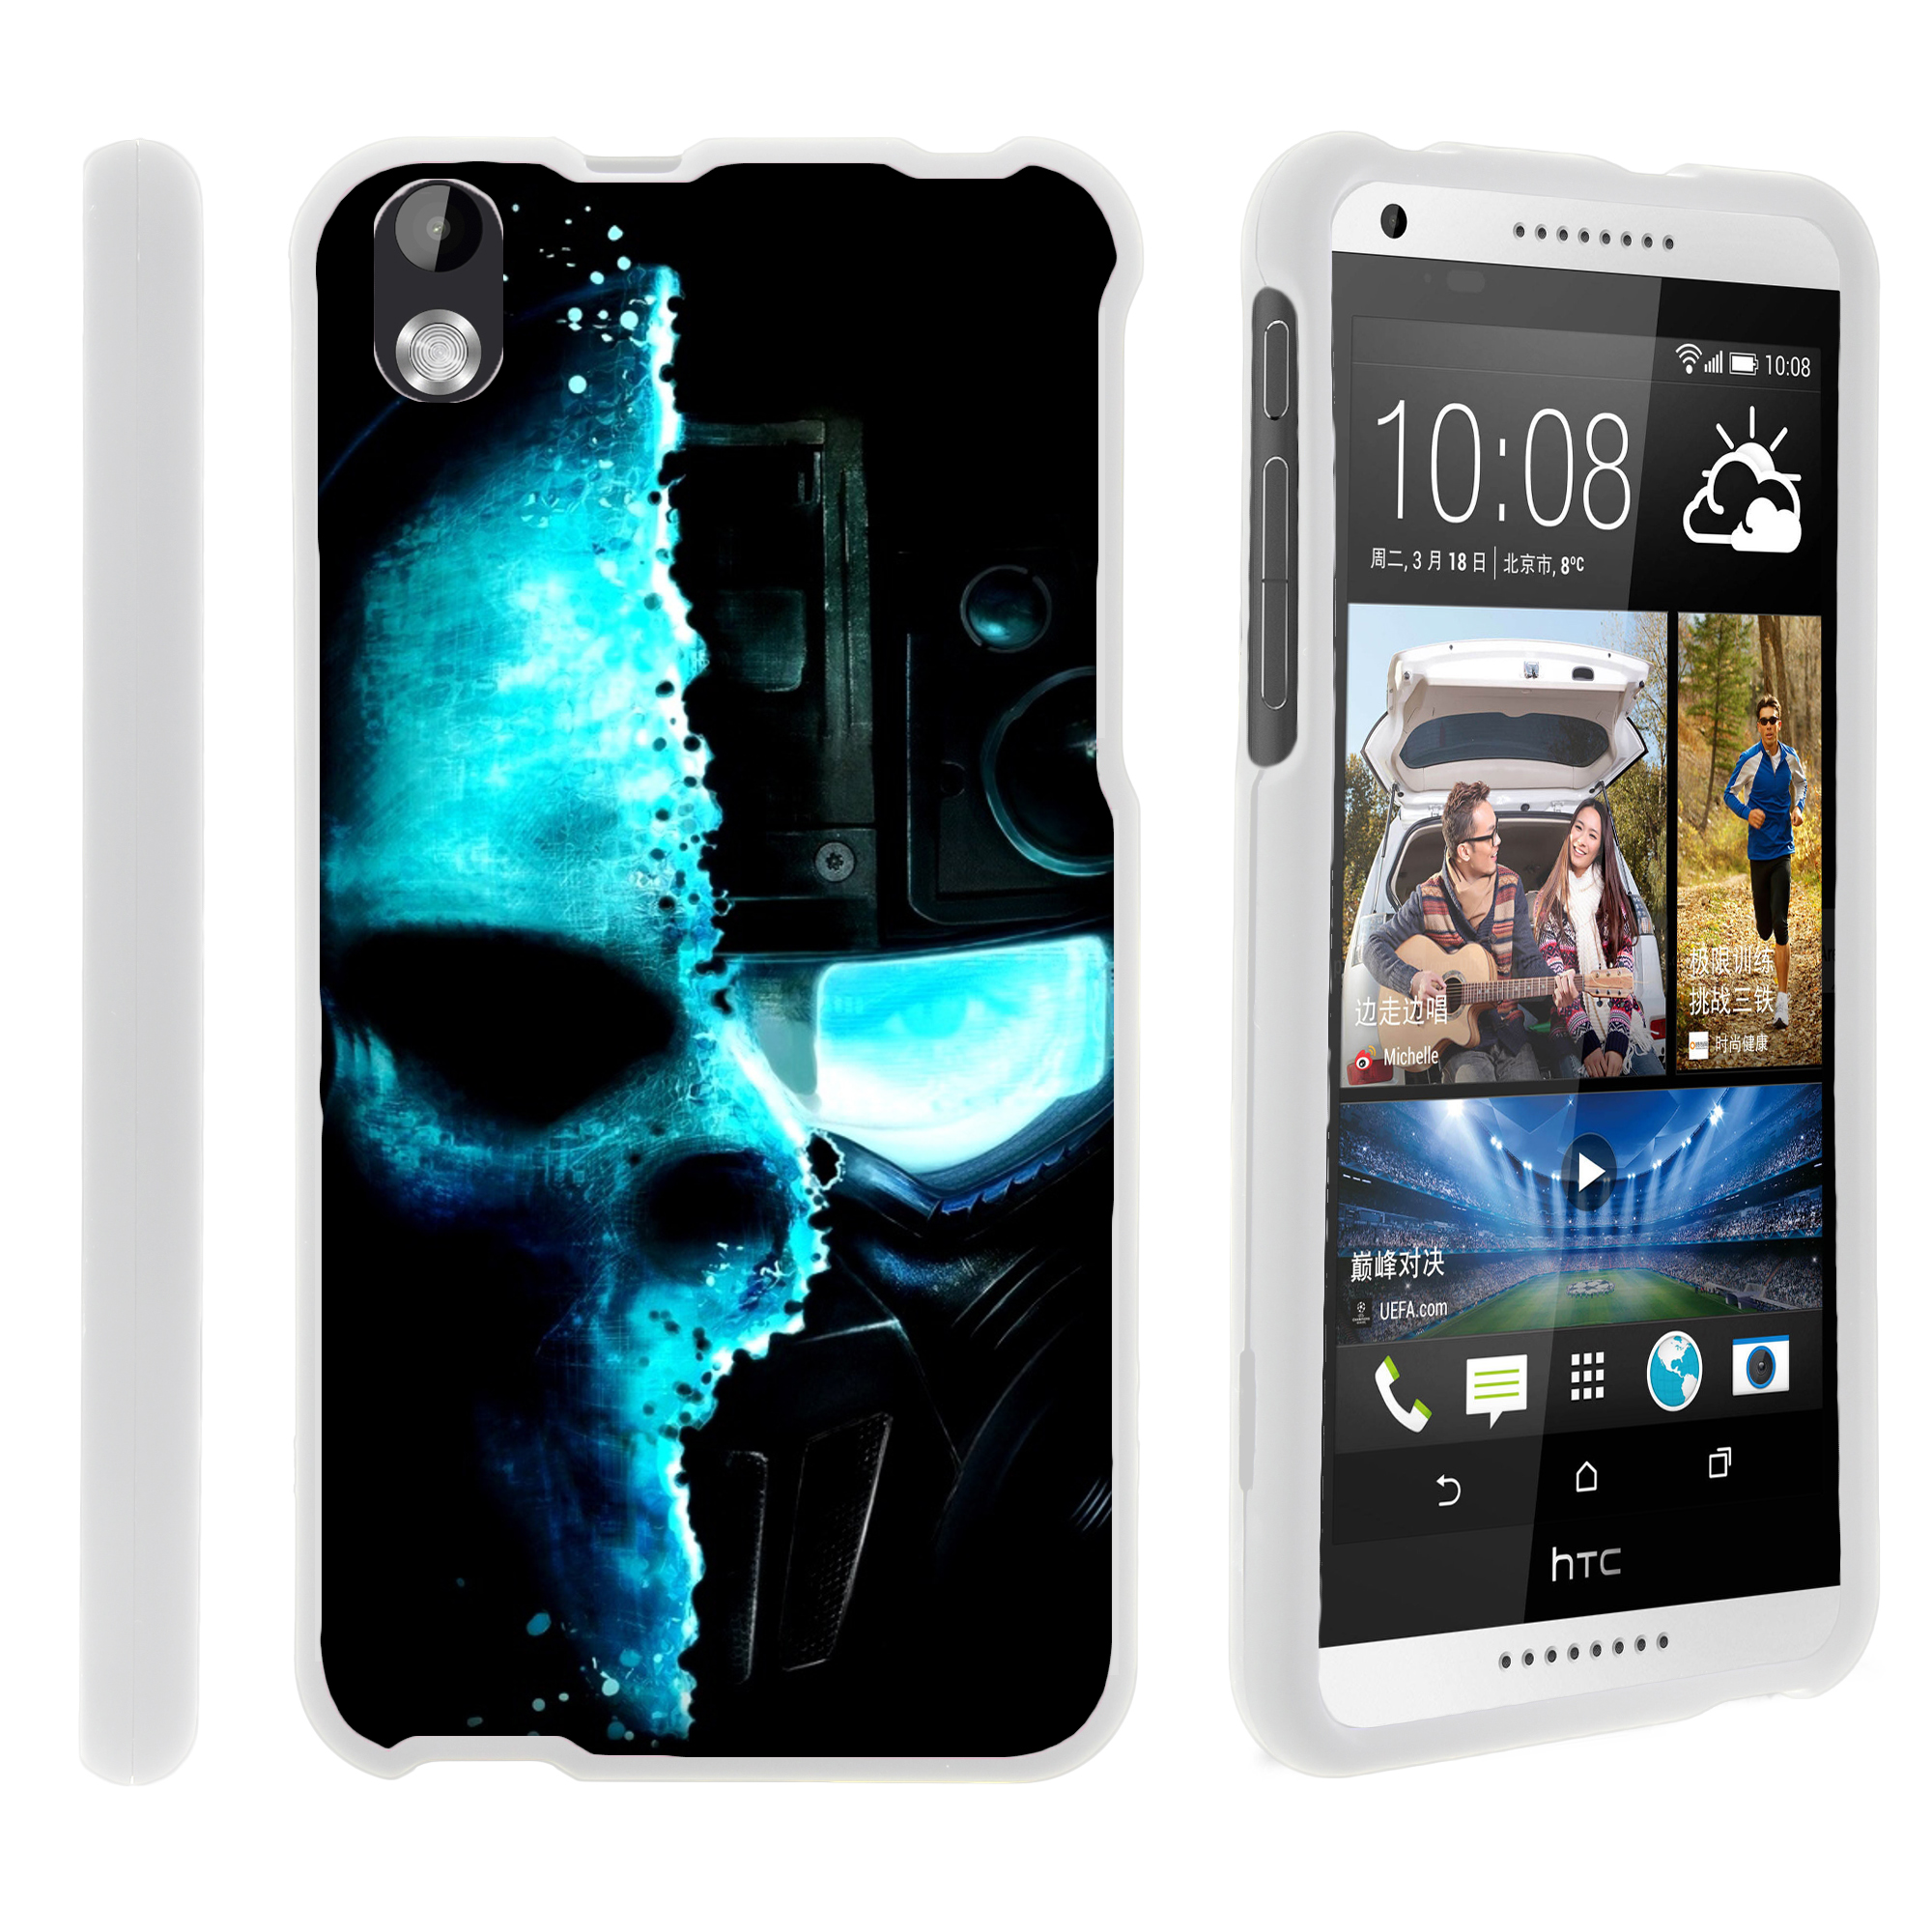 HTC Desire 816, [SNAP SHELL][White] 2 Piece Snap On Rubberized Hard White Plastic Cell Phone Case with Exclusive Art - Baseball Blur